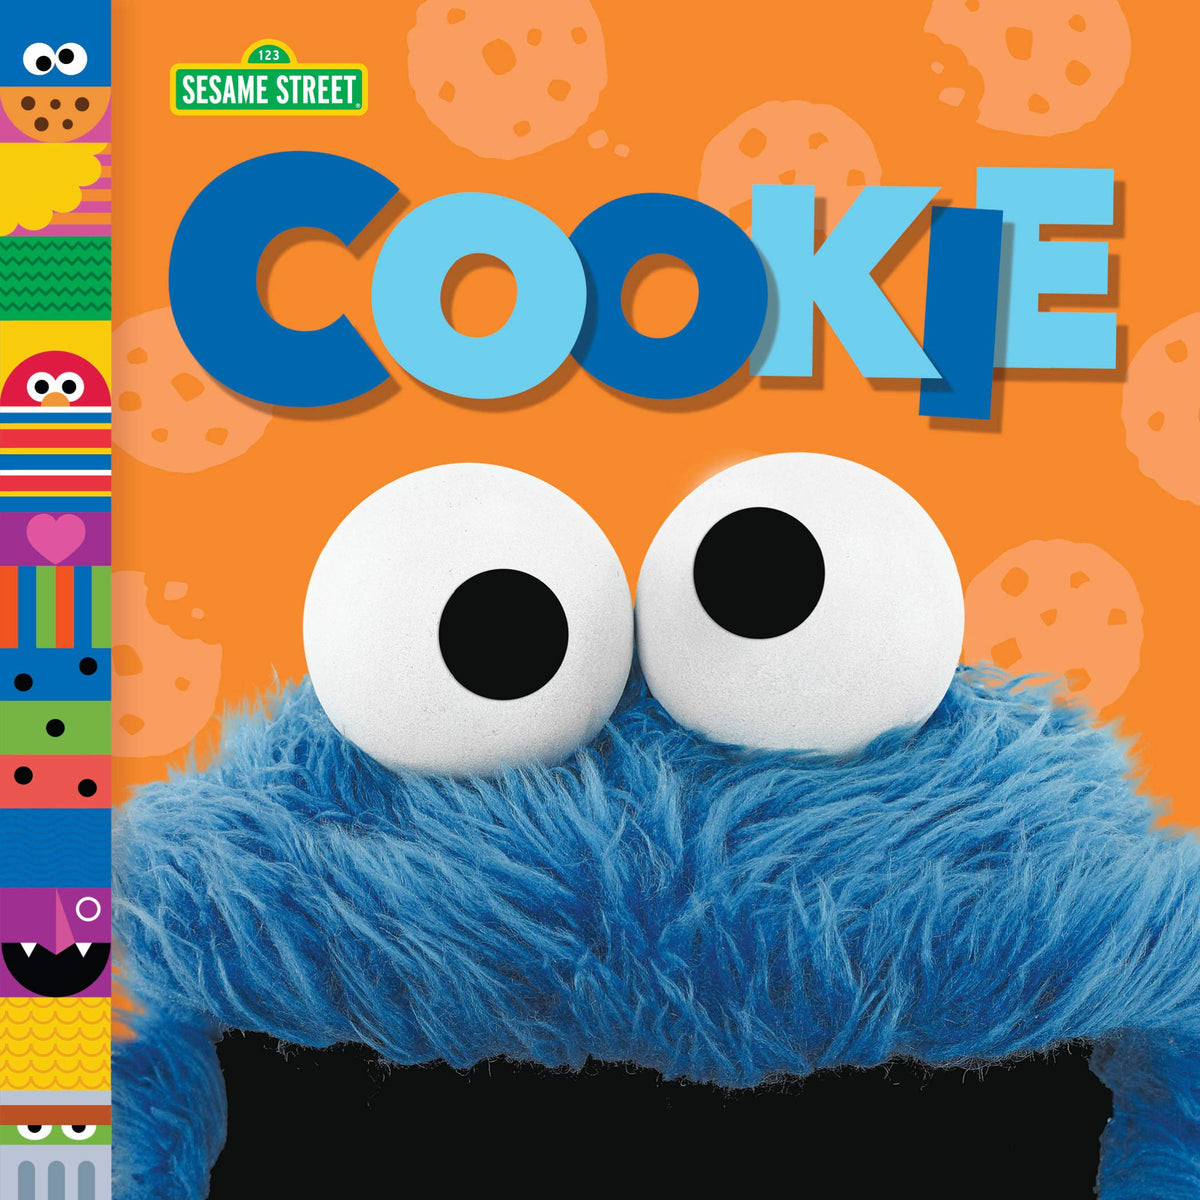 Sesame Street Friends: Cookie Monster board book canada ontario andrea posner sanchez